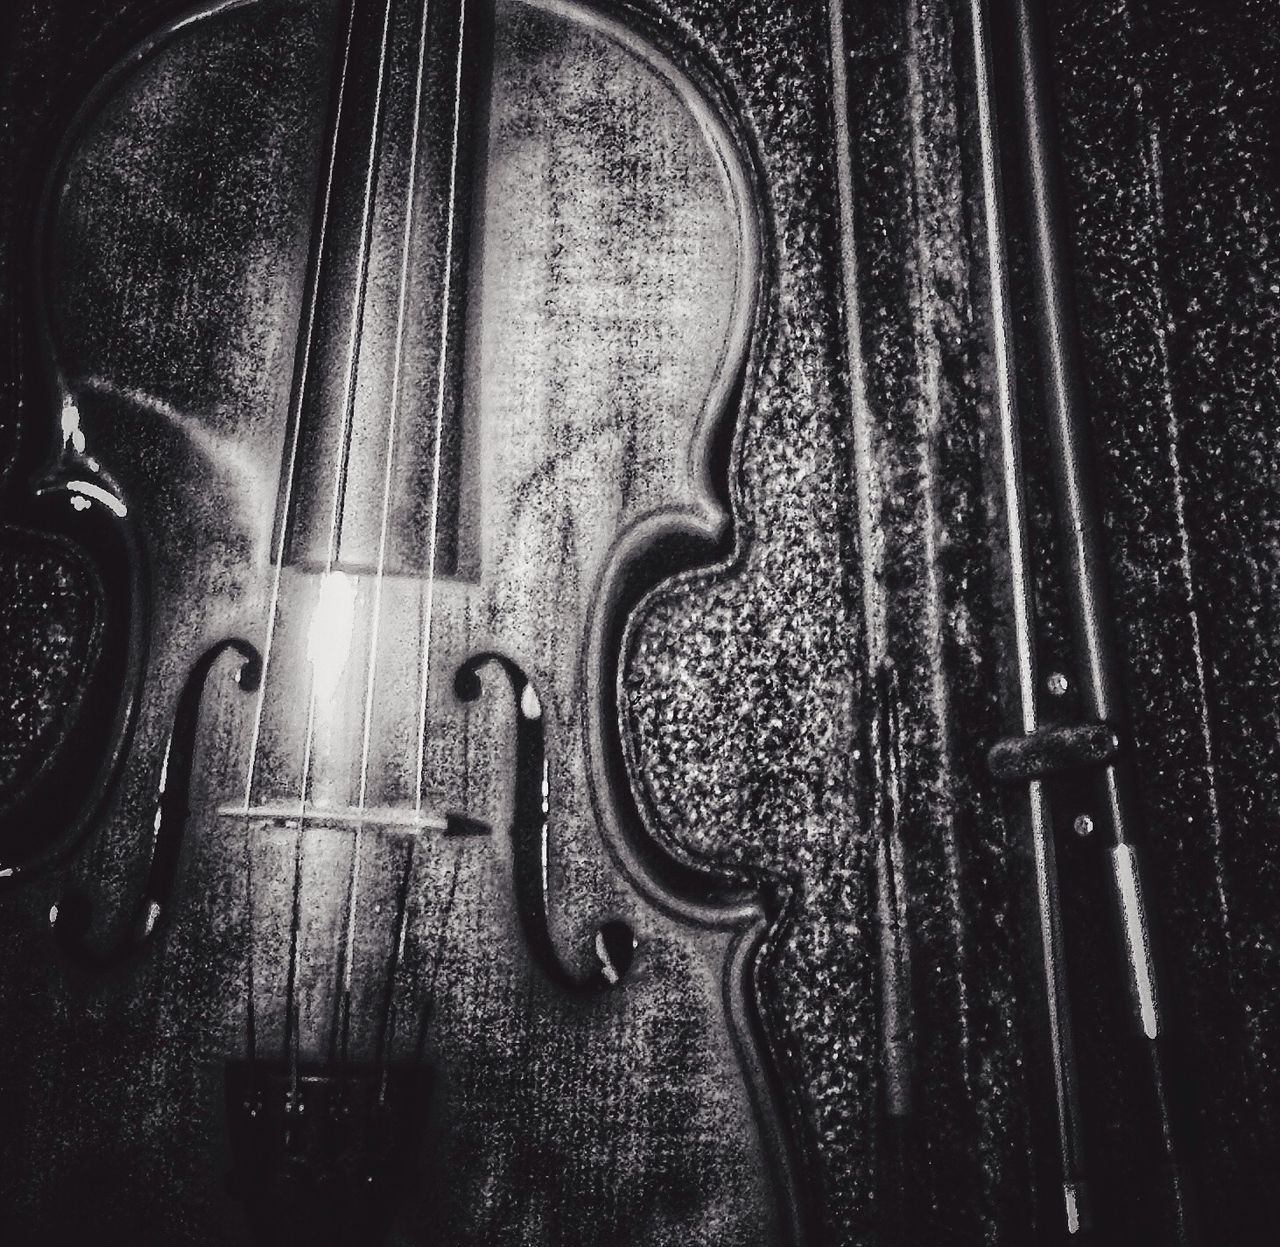 Violin as a forest Blackdrawing Black And White IPhoneography Iphoneonly Black & White EyeEm Iphonesia Iphonephotography Bw